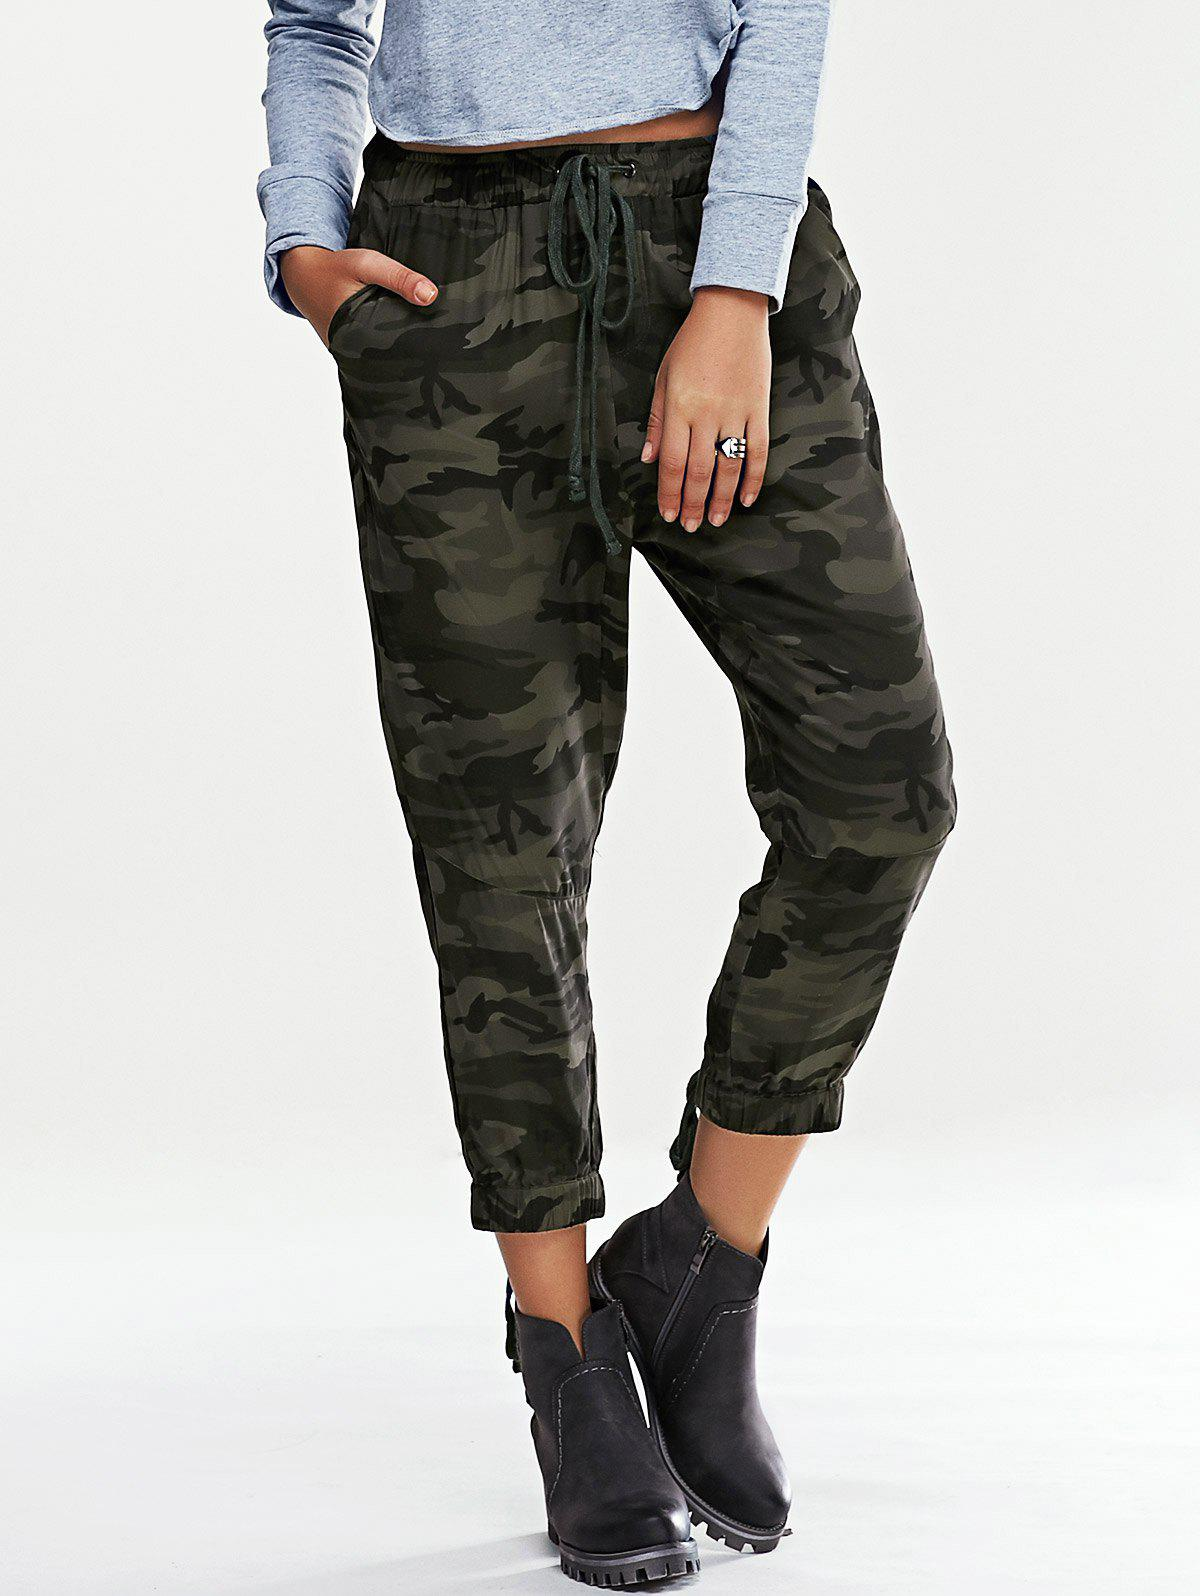 Trendy Lace-Up Elastic Waist Camouflage Print Women's Pants - ARMY GREEN CAMOUFLAGE XL